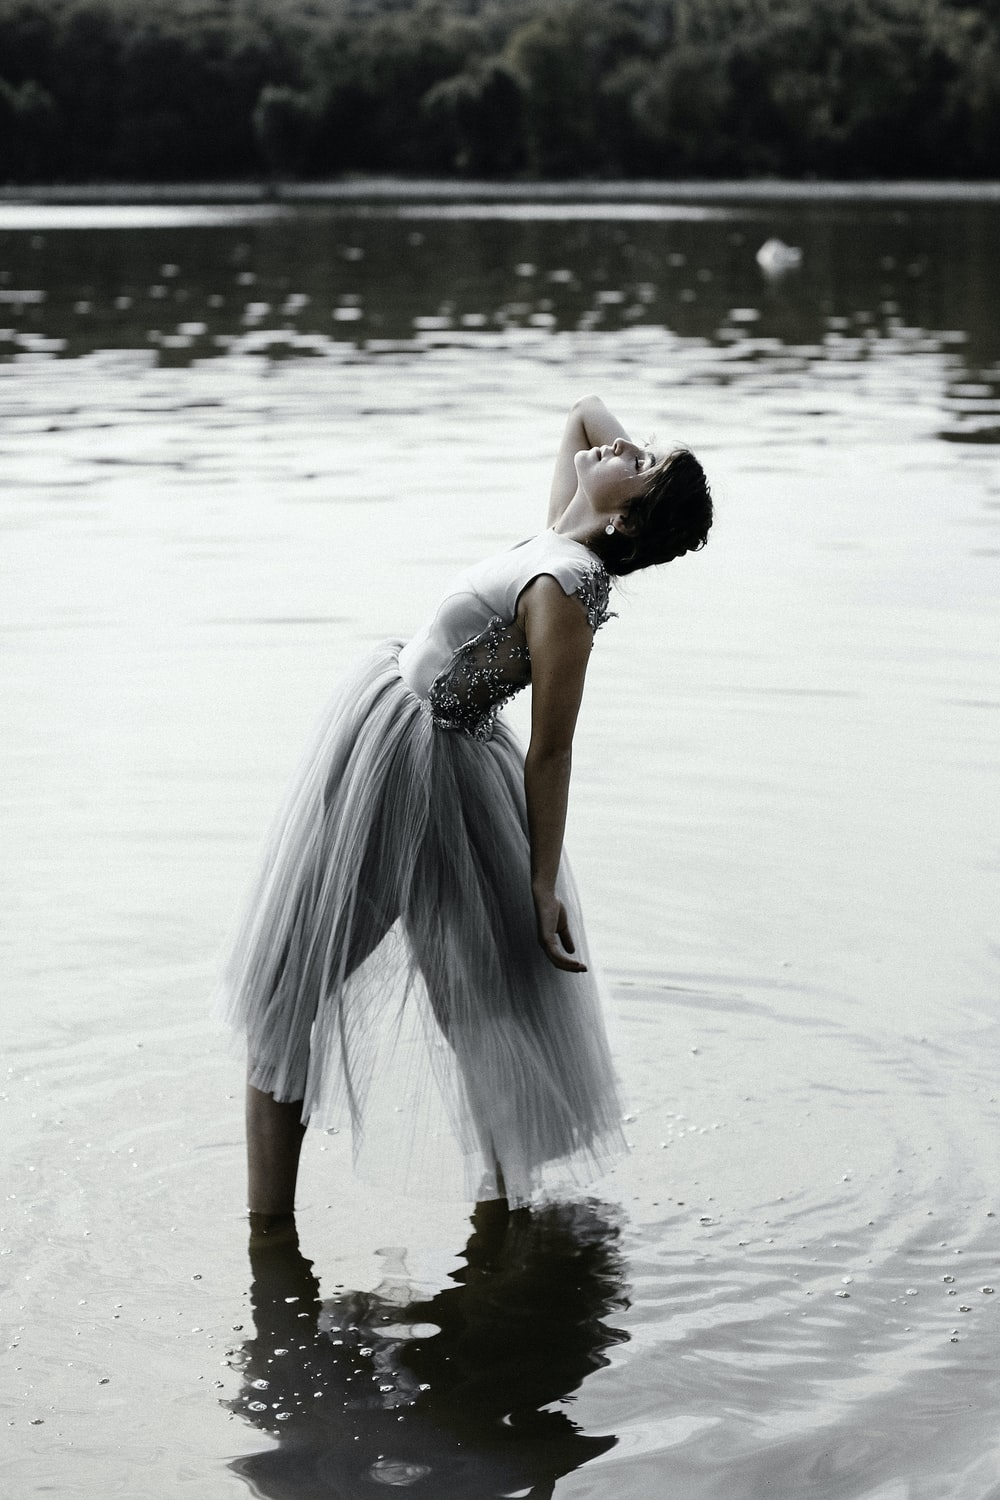 woman in gray dress standing on shallow body of water